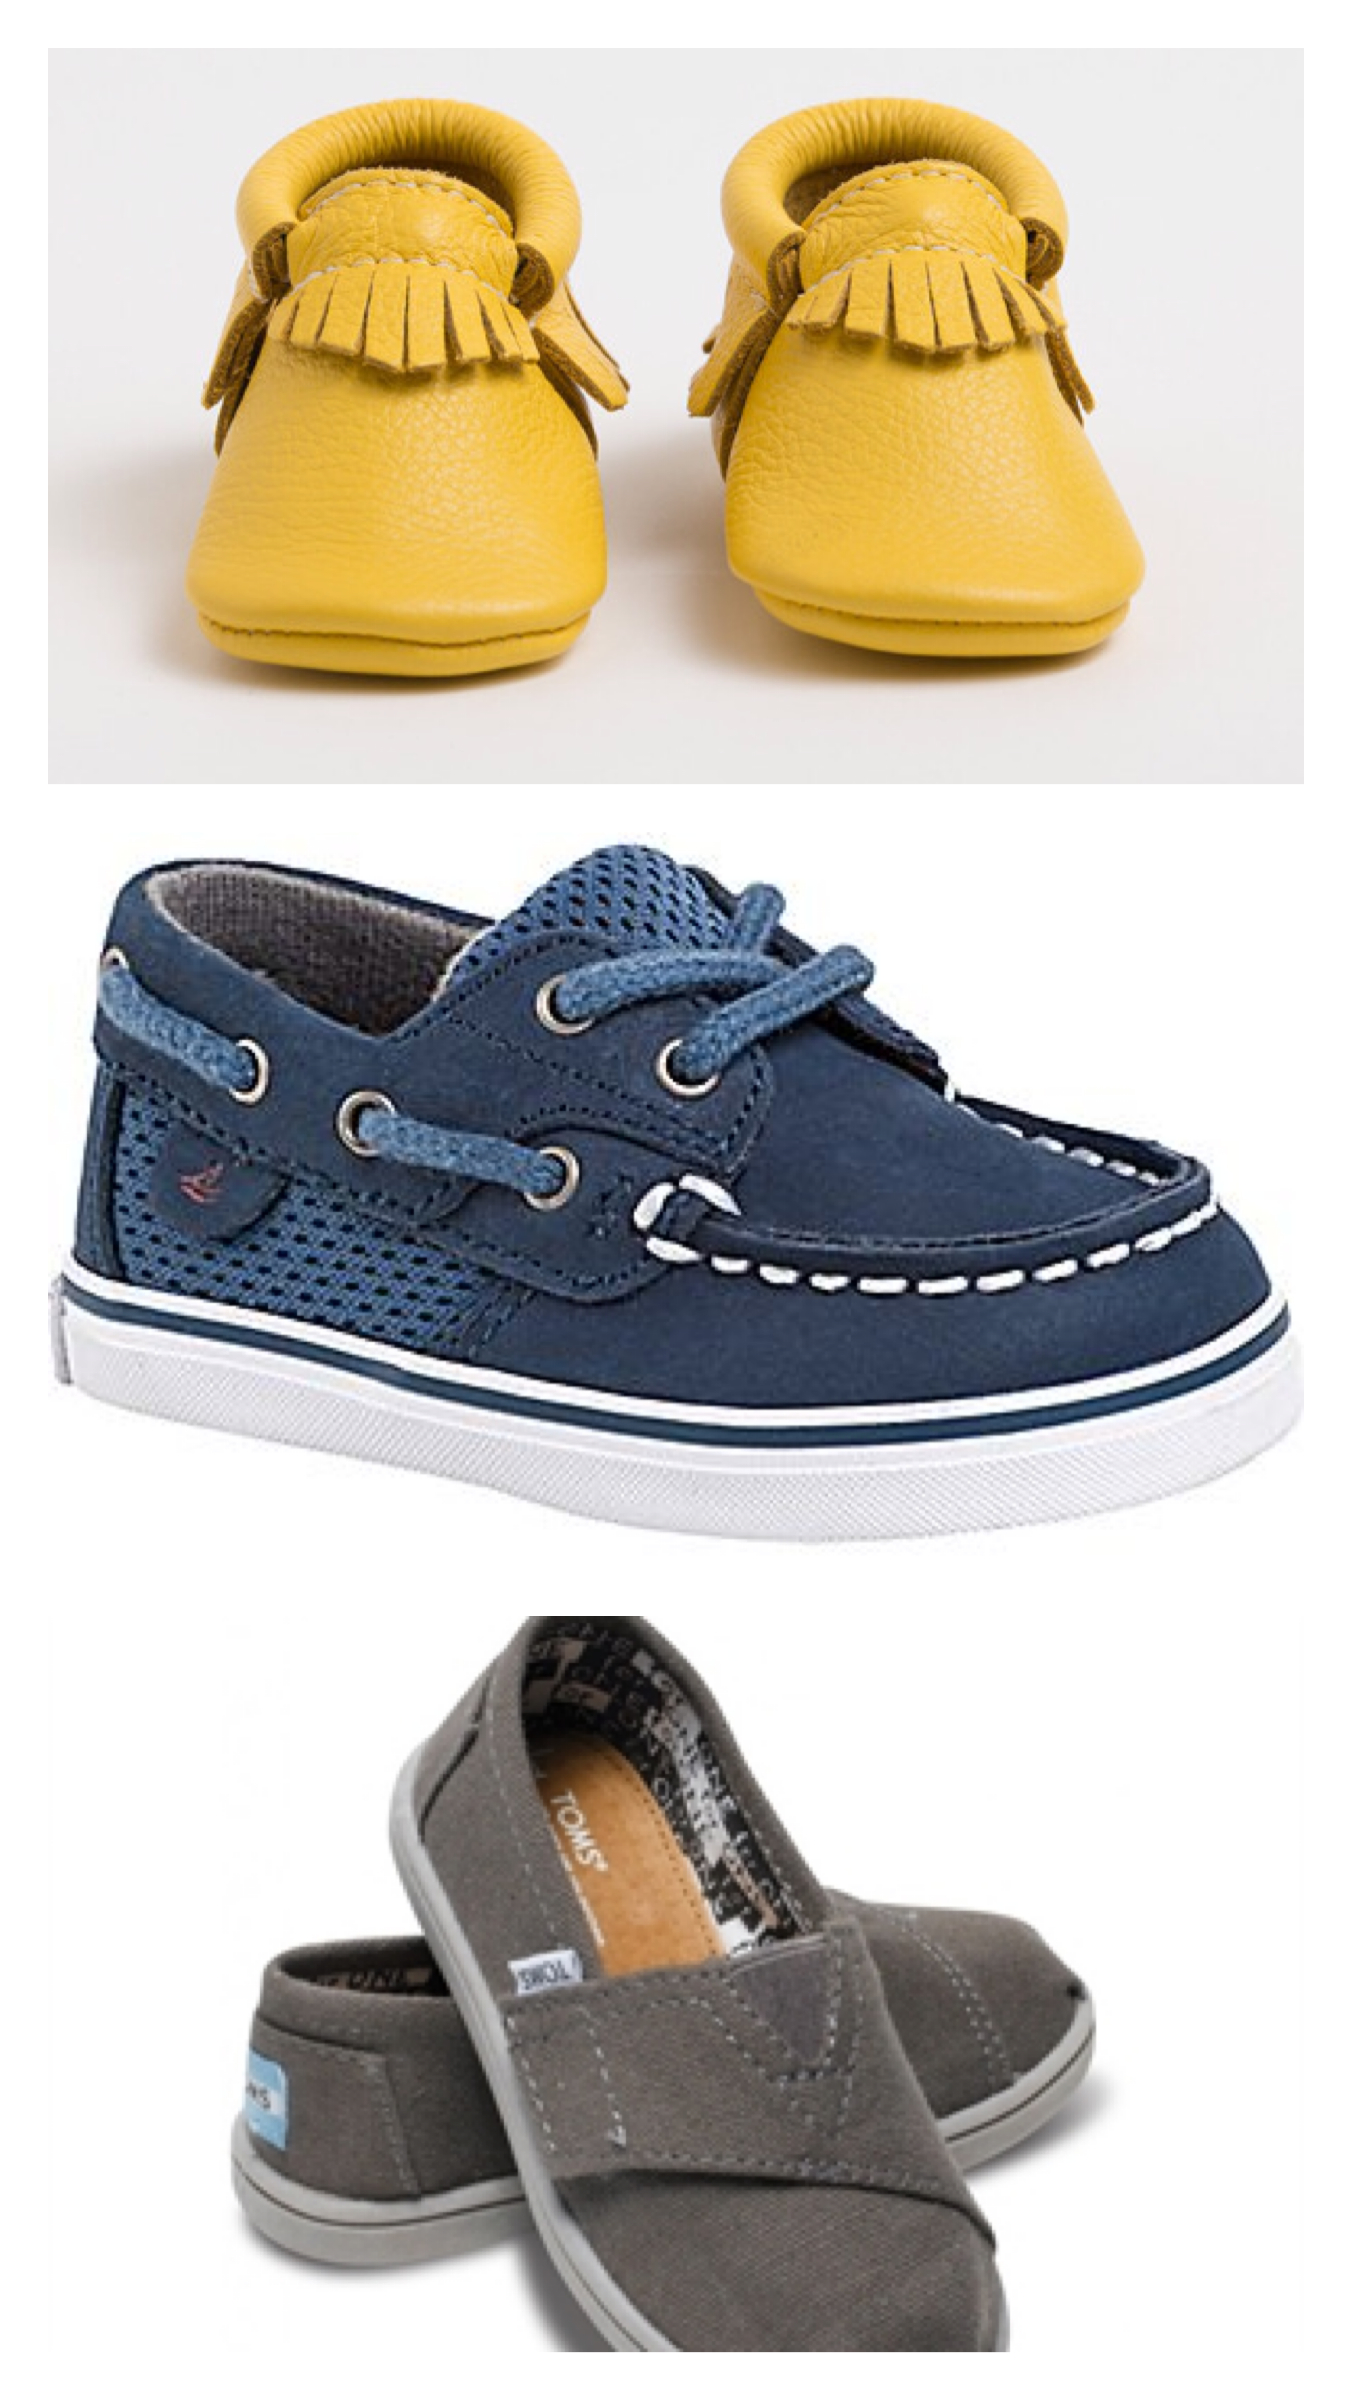 simple shoes can make a world of a difference